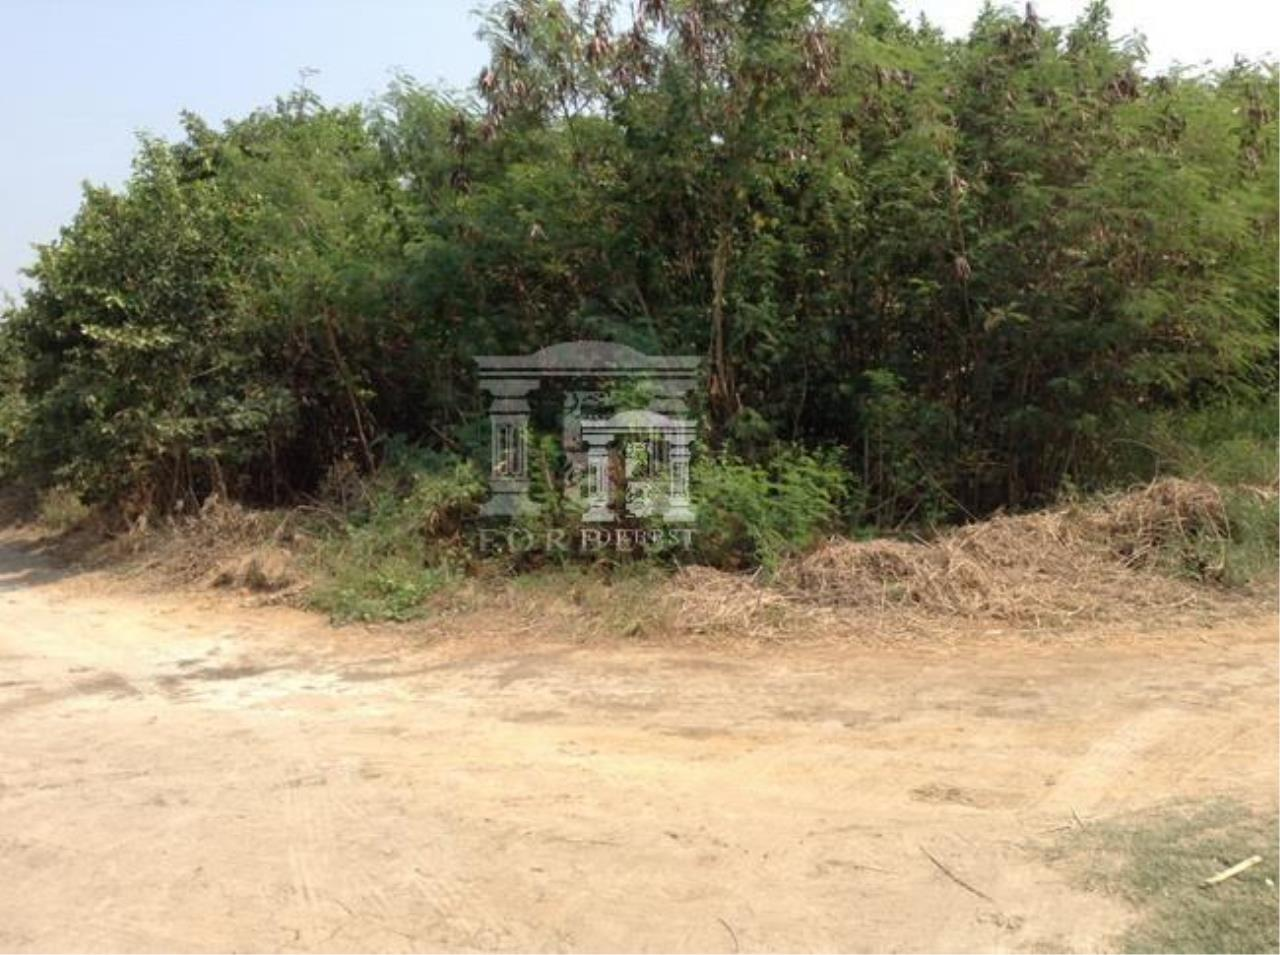 Forbest Properties Agency's 37164-Land For Sale, in Ban Pho district, Chachoengsao province, 4 rai 340 sq.wa. 1